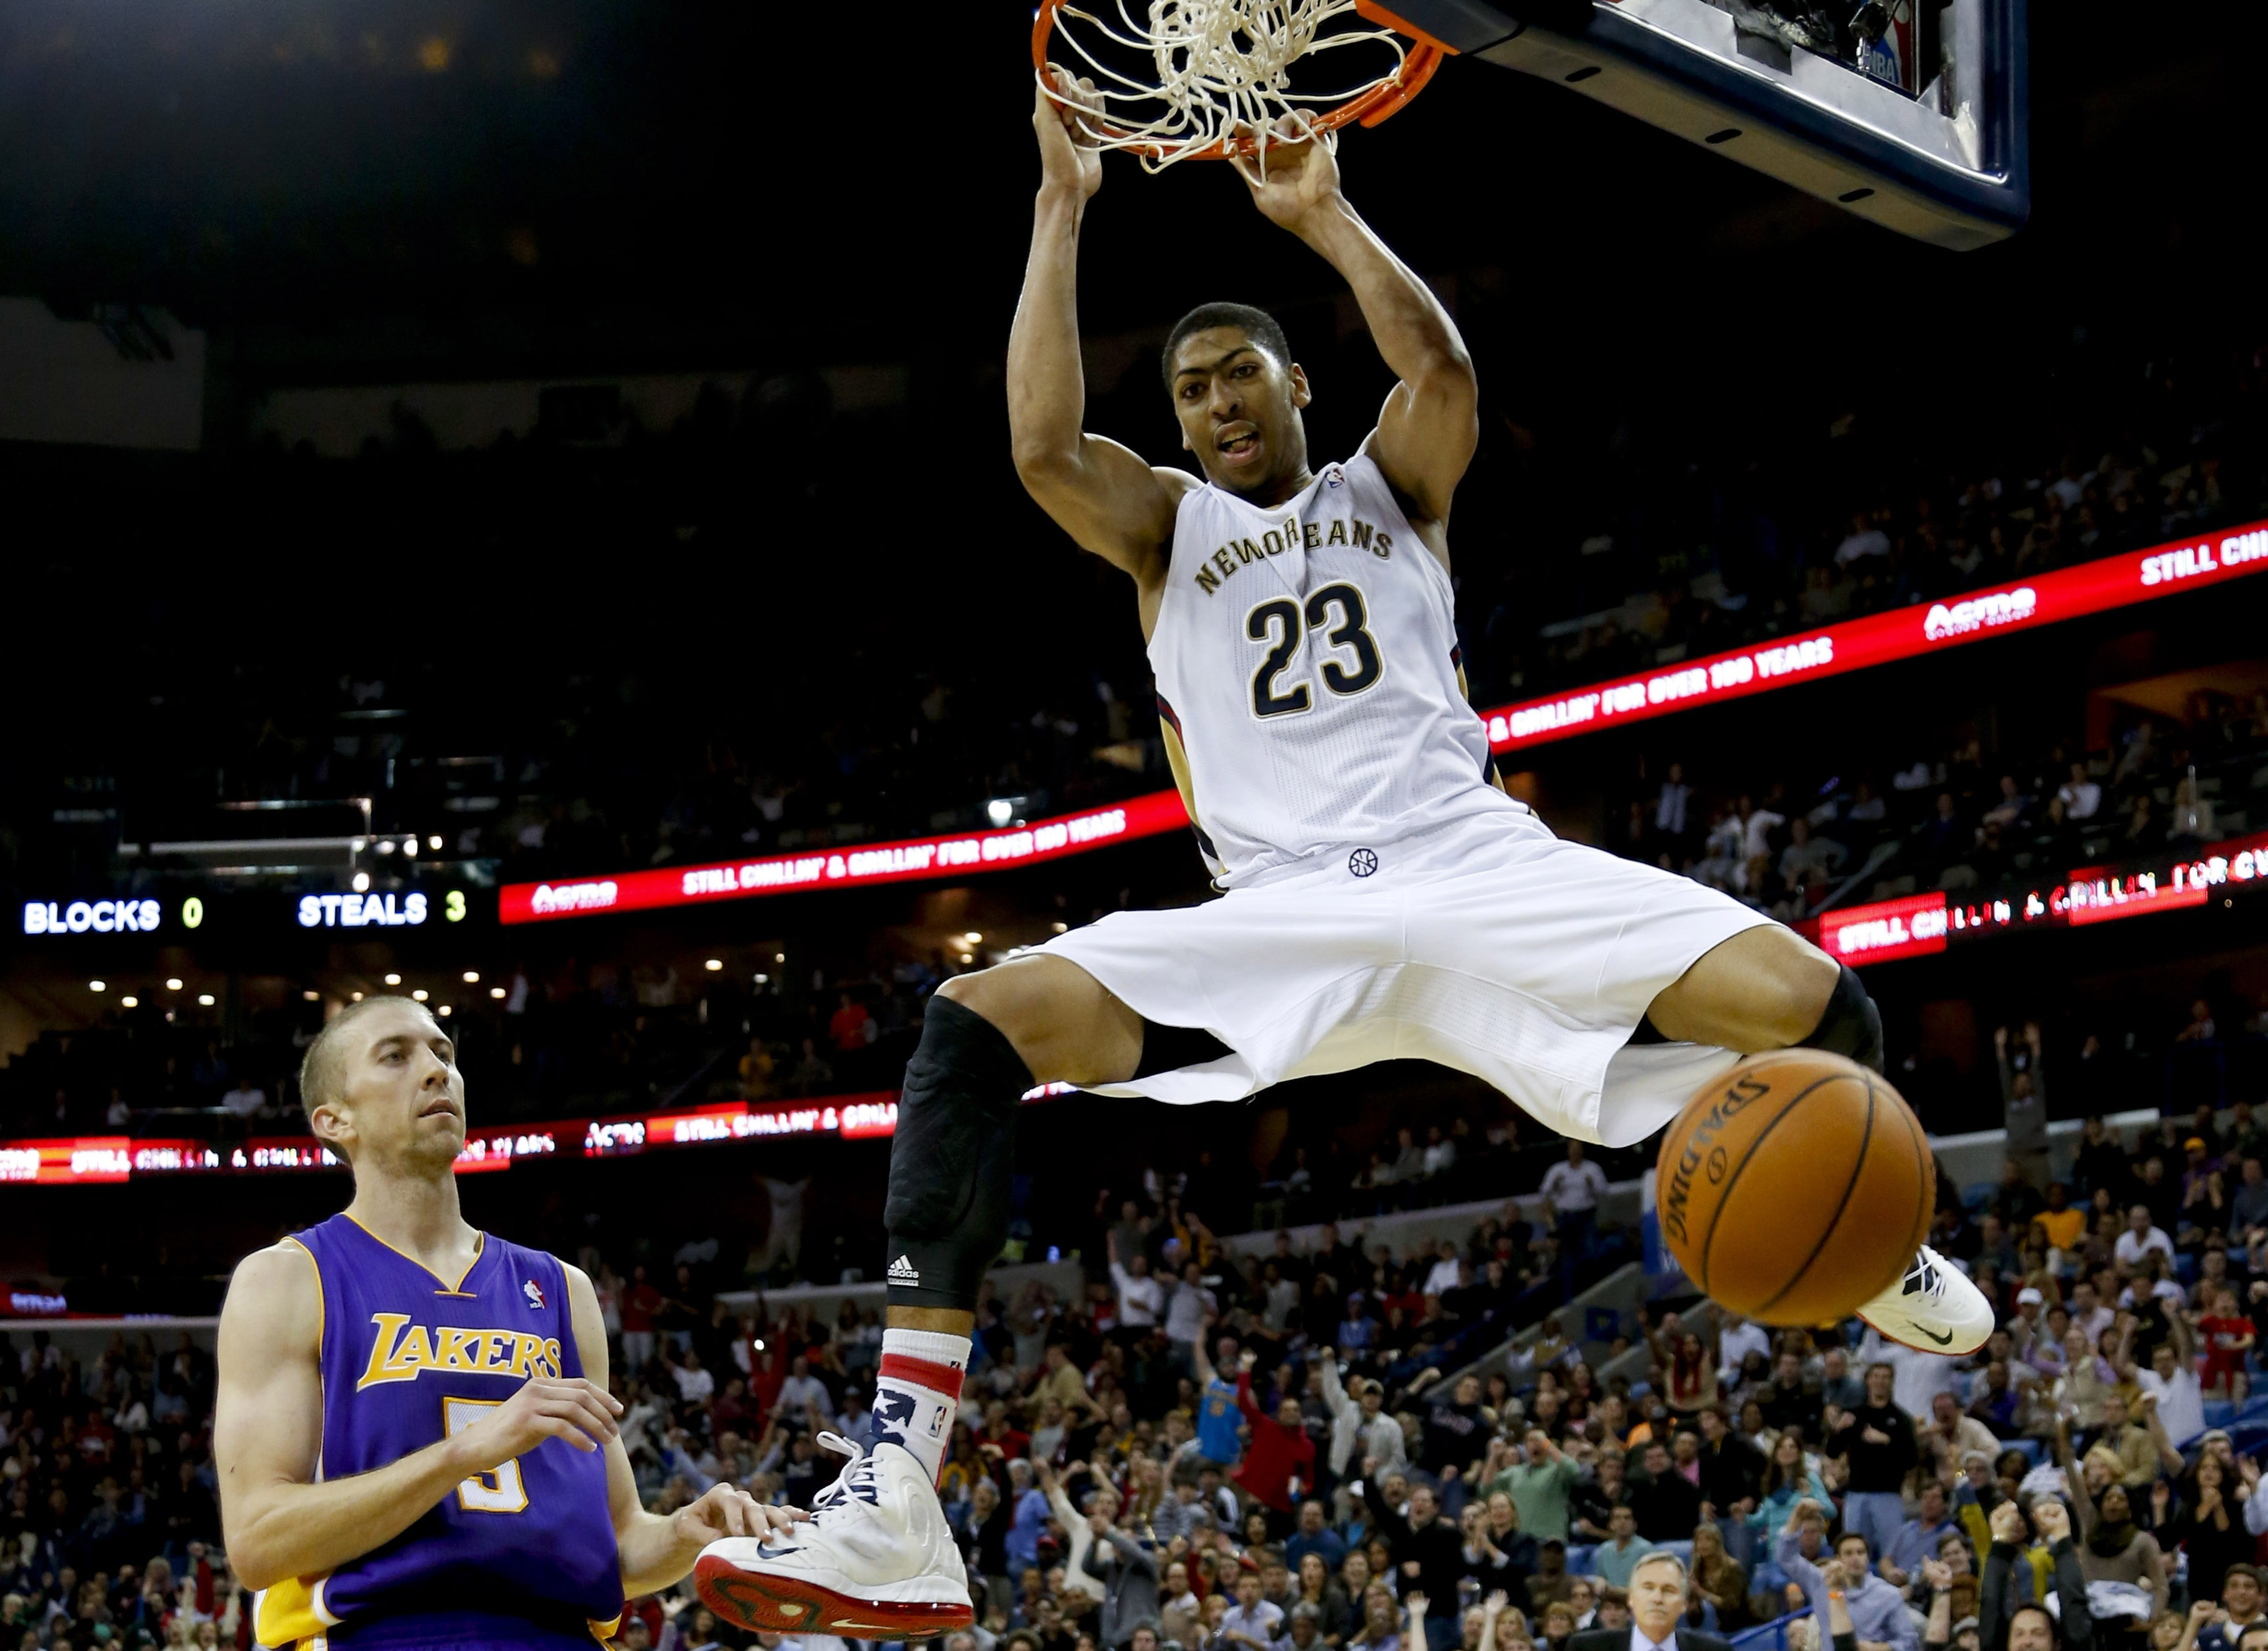 NBA All-Star Weekend is another New Orleans spotlight for Anthony Davis